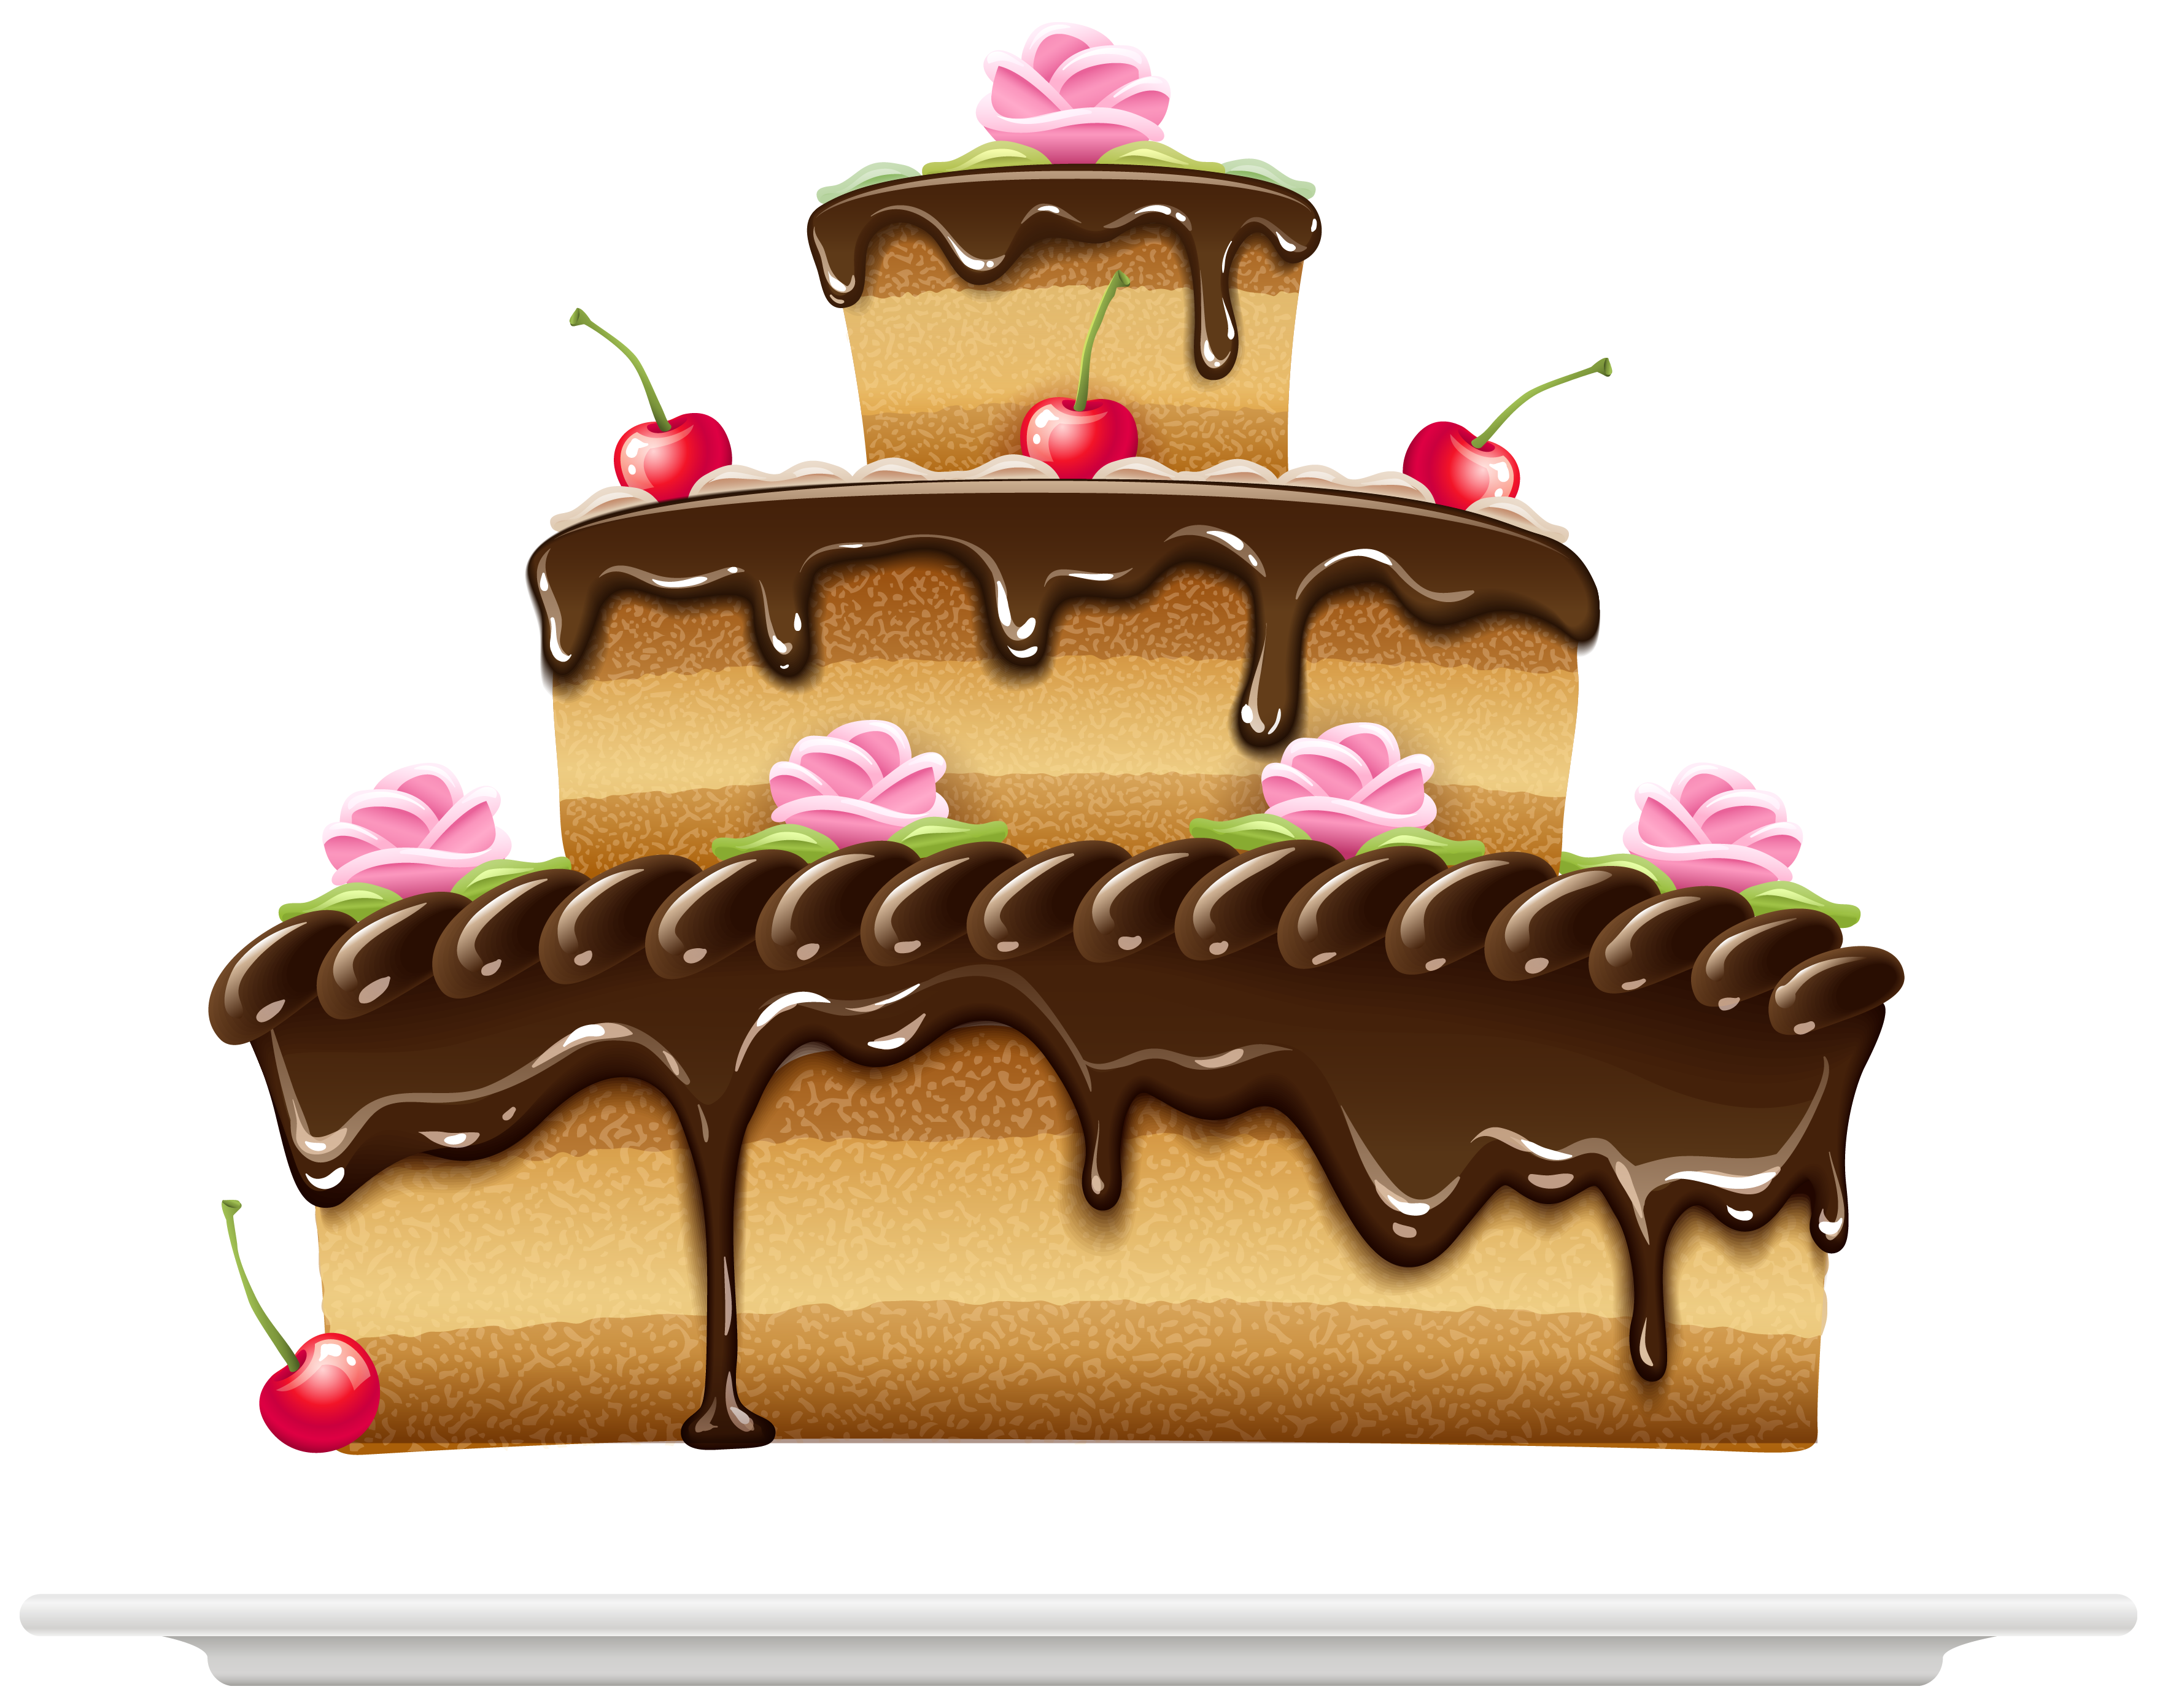 Cake png. Images free download birthday